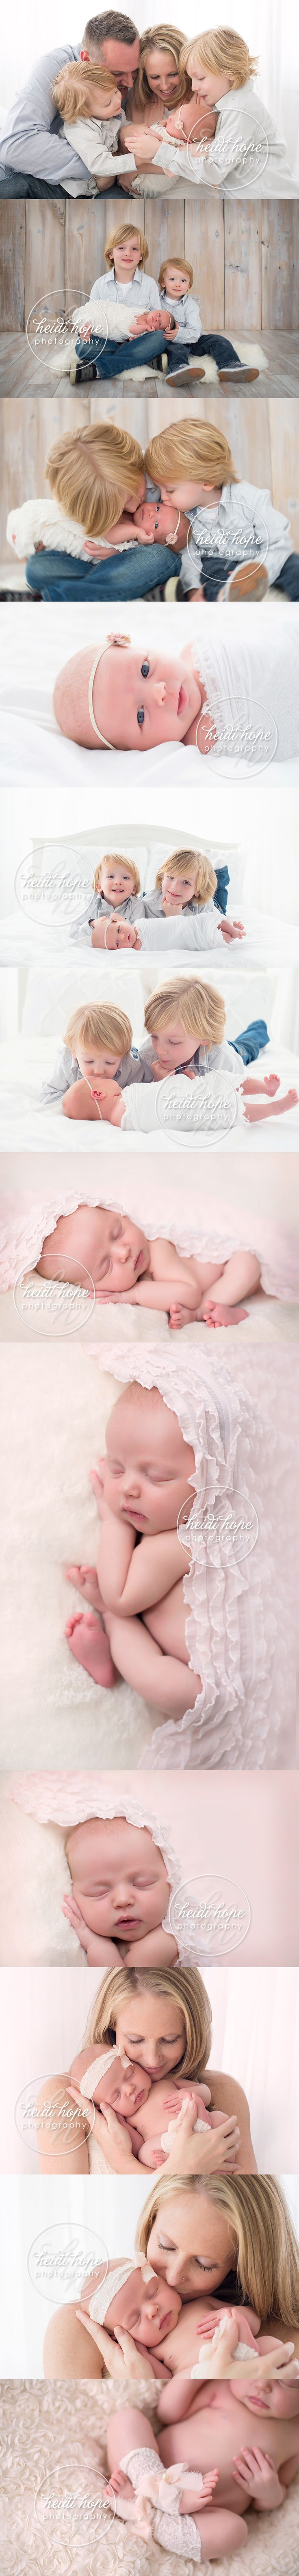 Newborn baby girl in a newborn and sibling family session. #newborn #family #bigbrothers